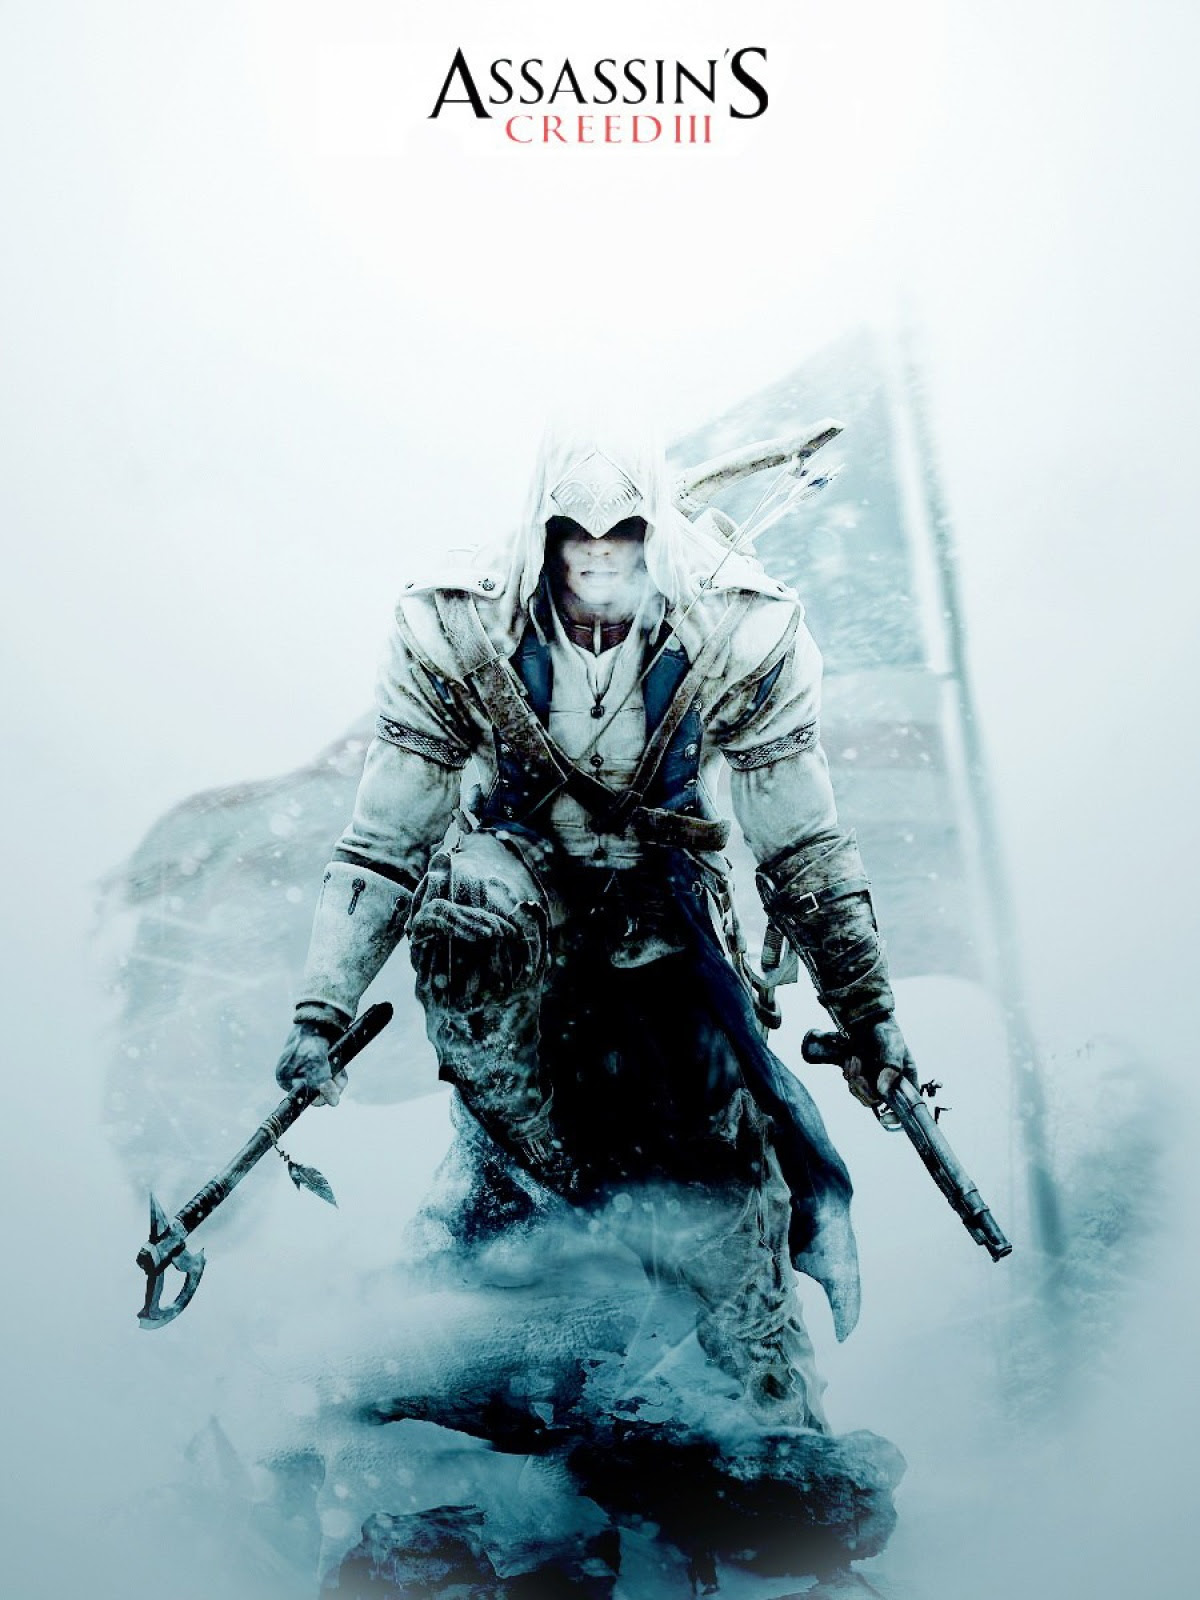 Assassins Creed Iii Mobile Wallpaper Mobiles Wall